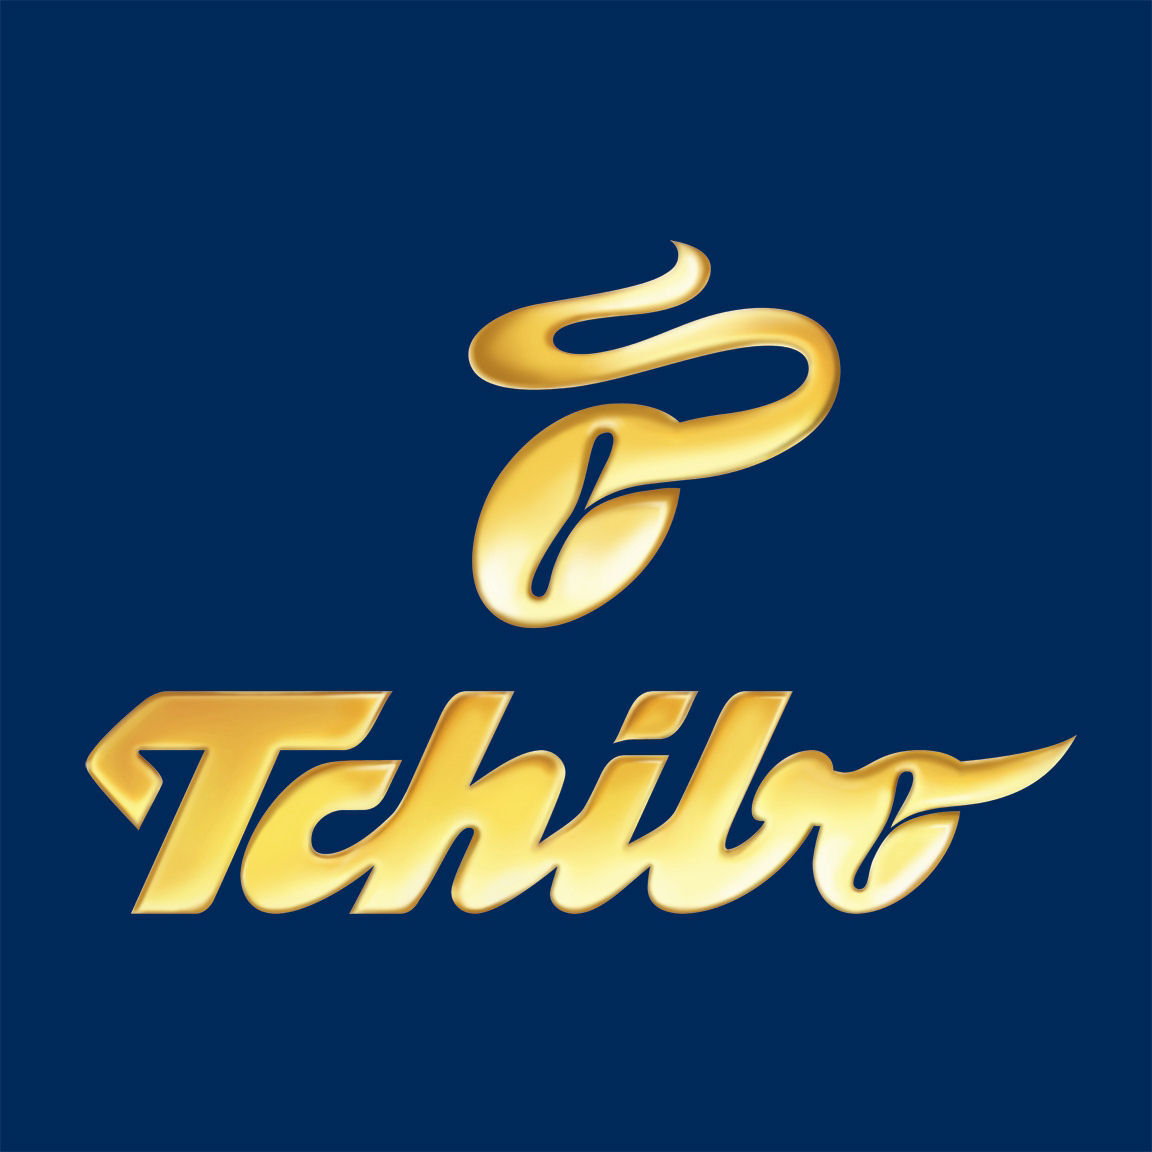 Tchibo Logo - Tchibo | Logopedia | FANDOM powered by Wikia